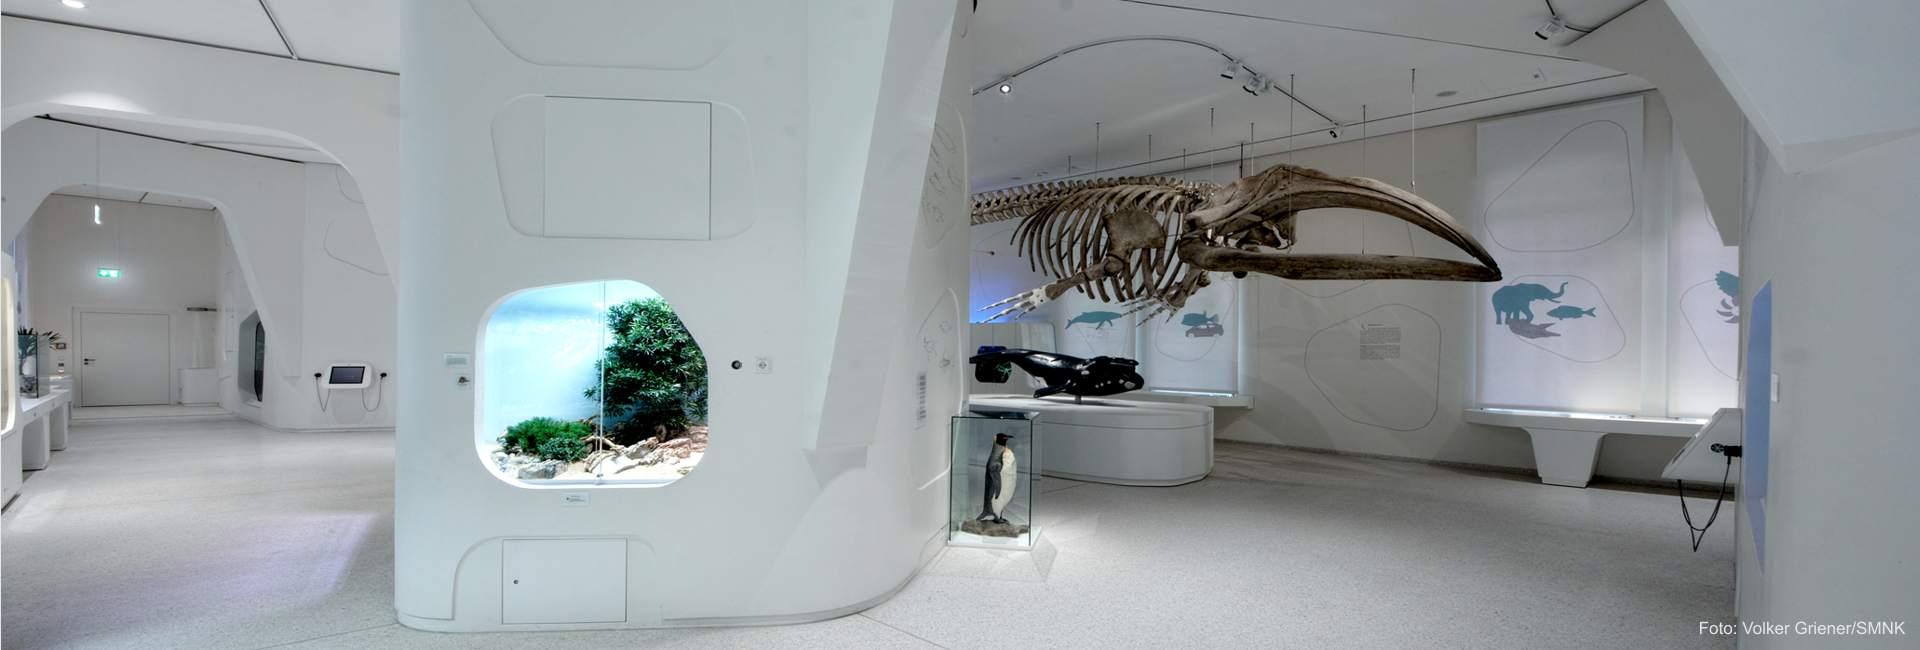 Museum-Showcases for the Natural Science Museum Karlsruhe